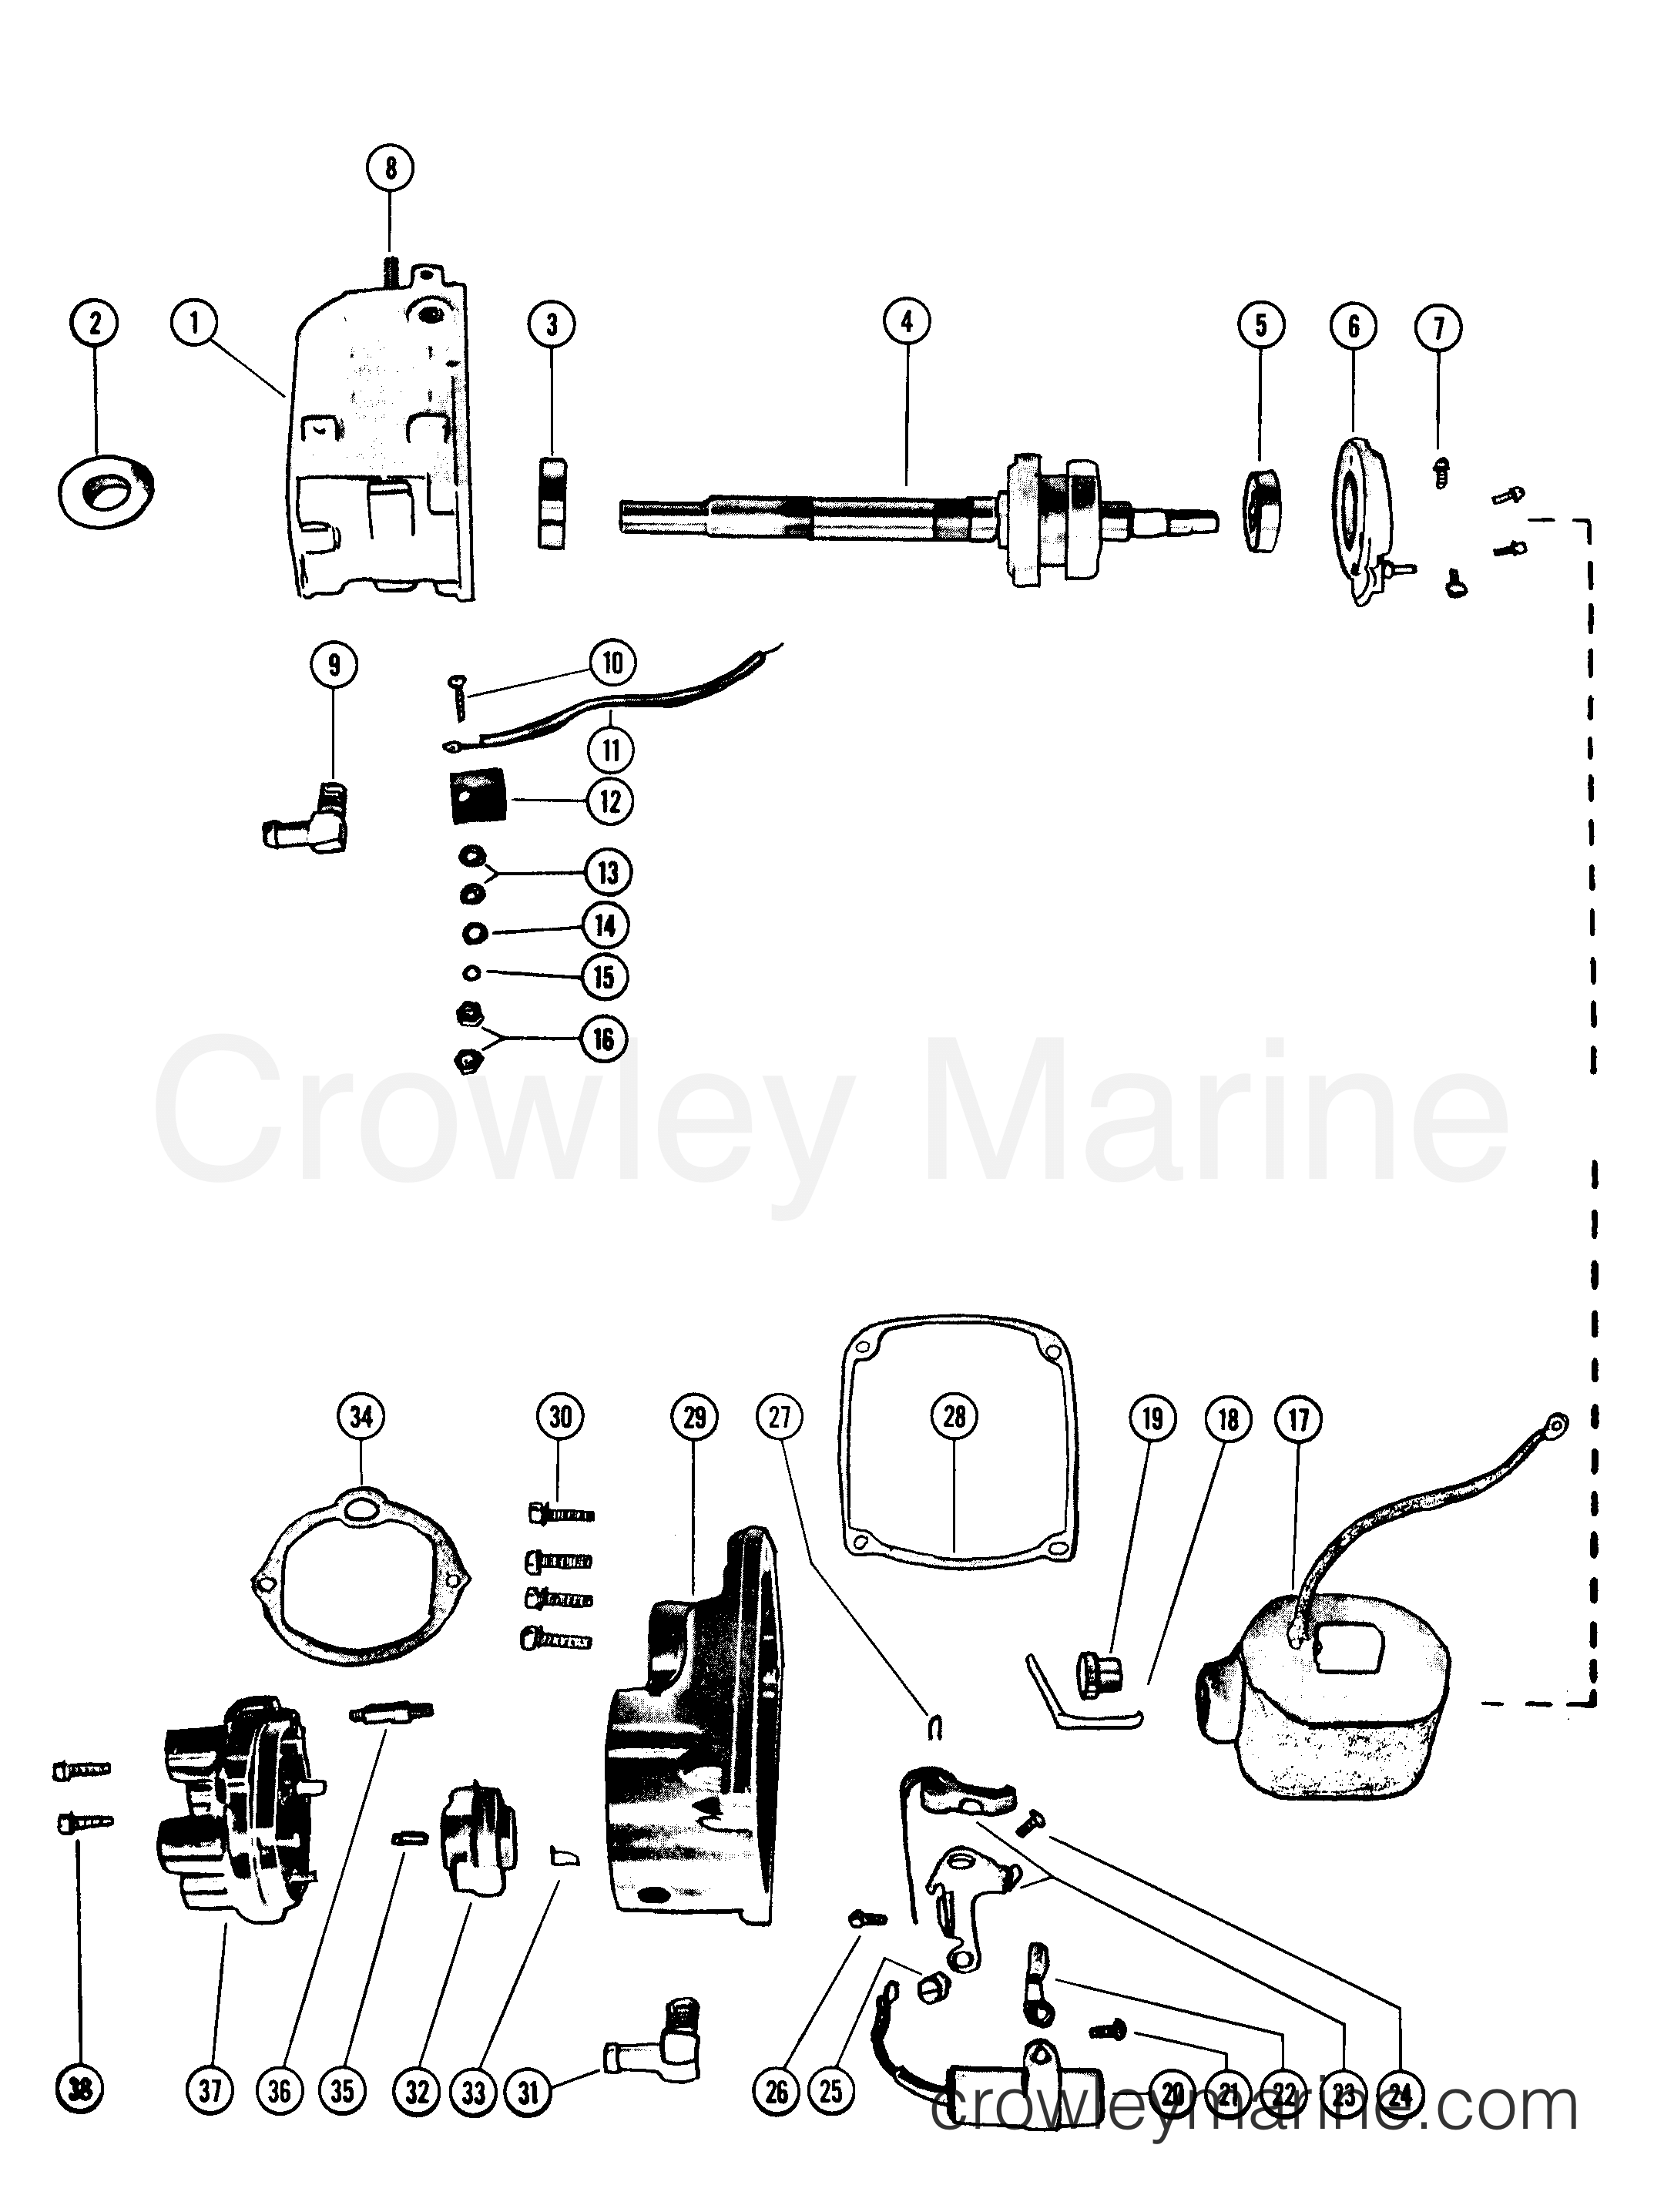 MAGNETO (INTERNAL PARTS) - All Years Mark Outboard MARK 50 ... on magneto generator schematic, magneto diagram, magneto ignition,